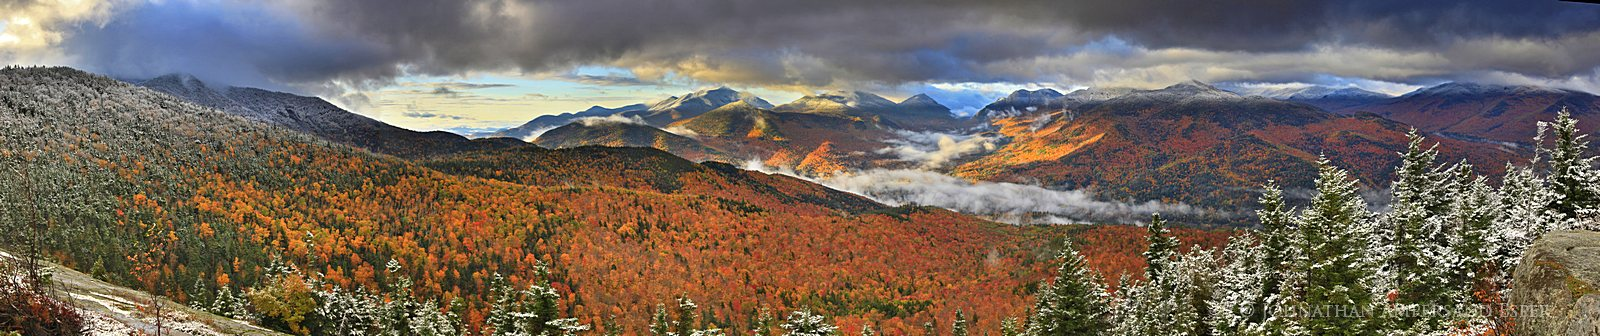 Hopkins Mt,first,autumn,snowfall,autumn snowfall,High Peaks,Hopkins Mountain,Keene Valley,Adirondack Mountains,Giant Mt,, photo